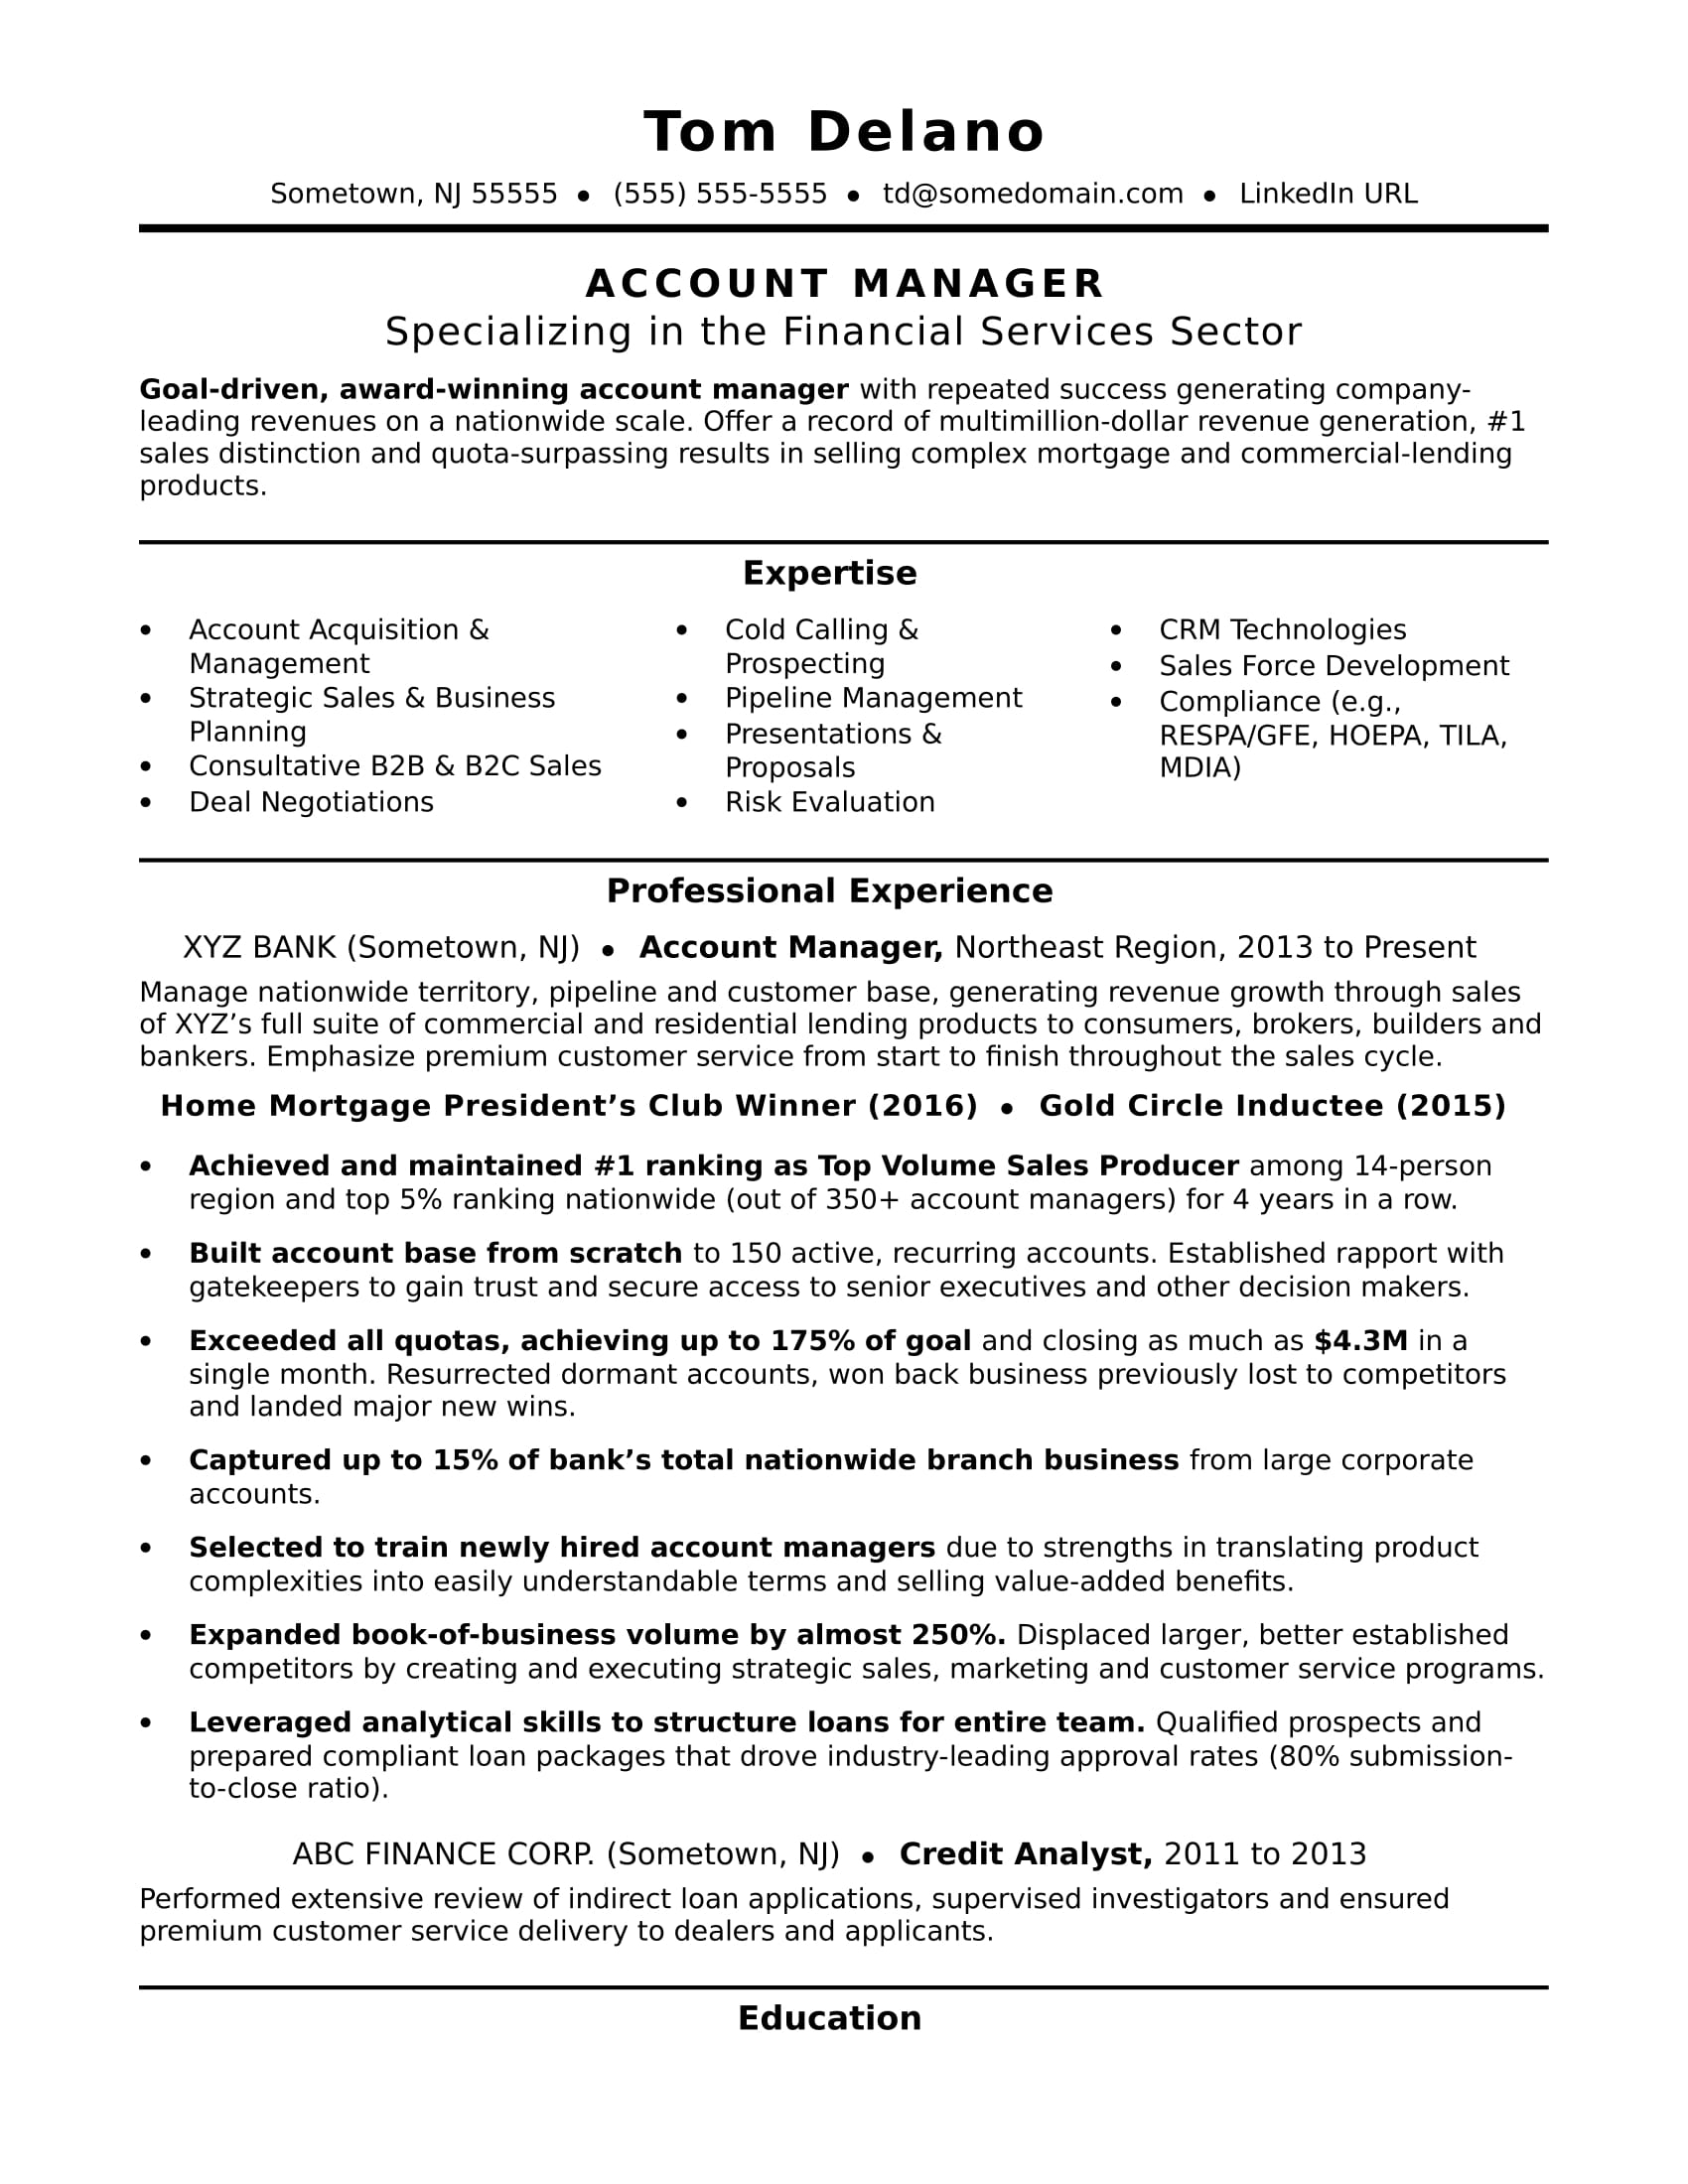 account manager resume sample - Account Manager Resume Examples